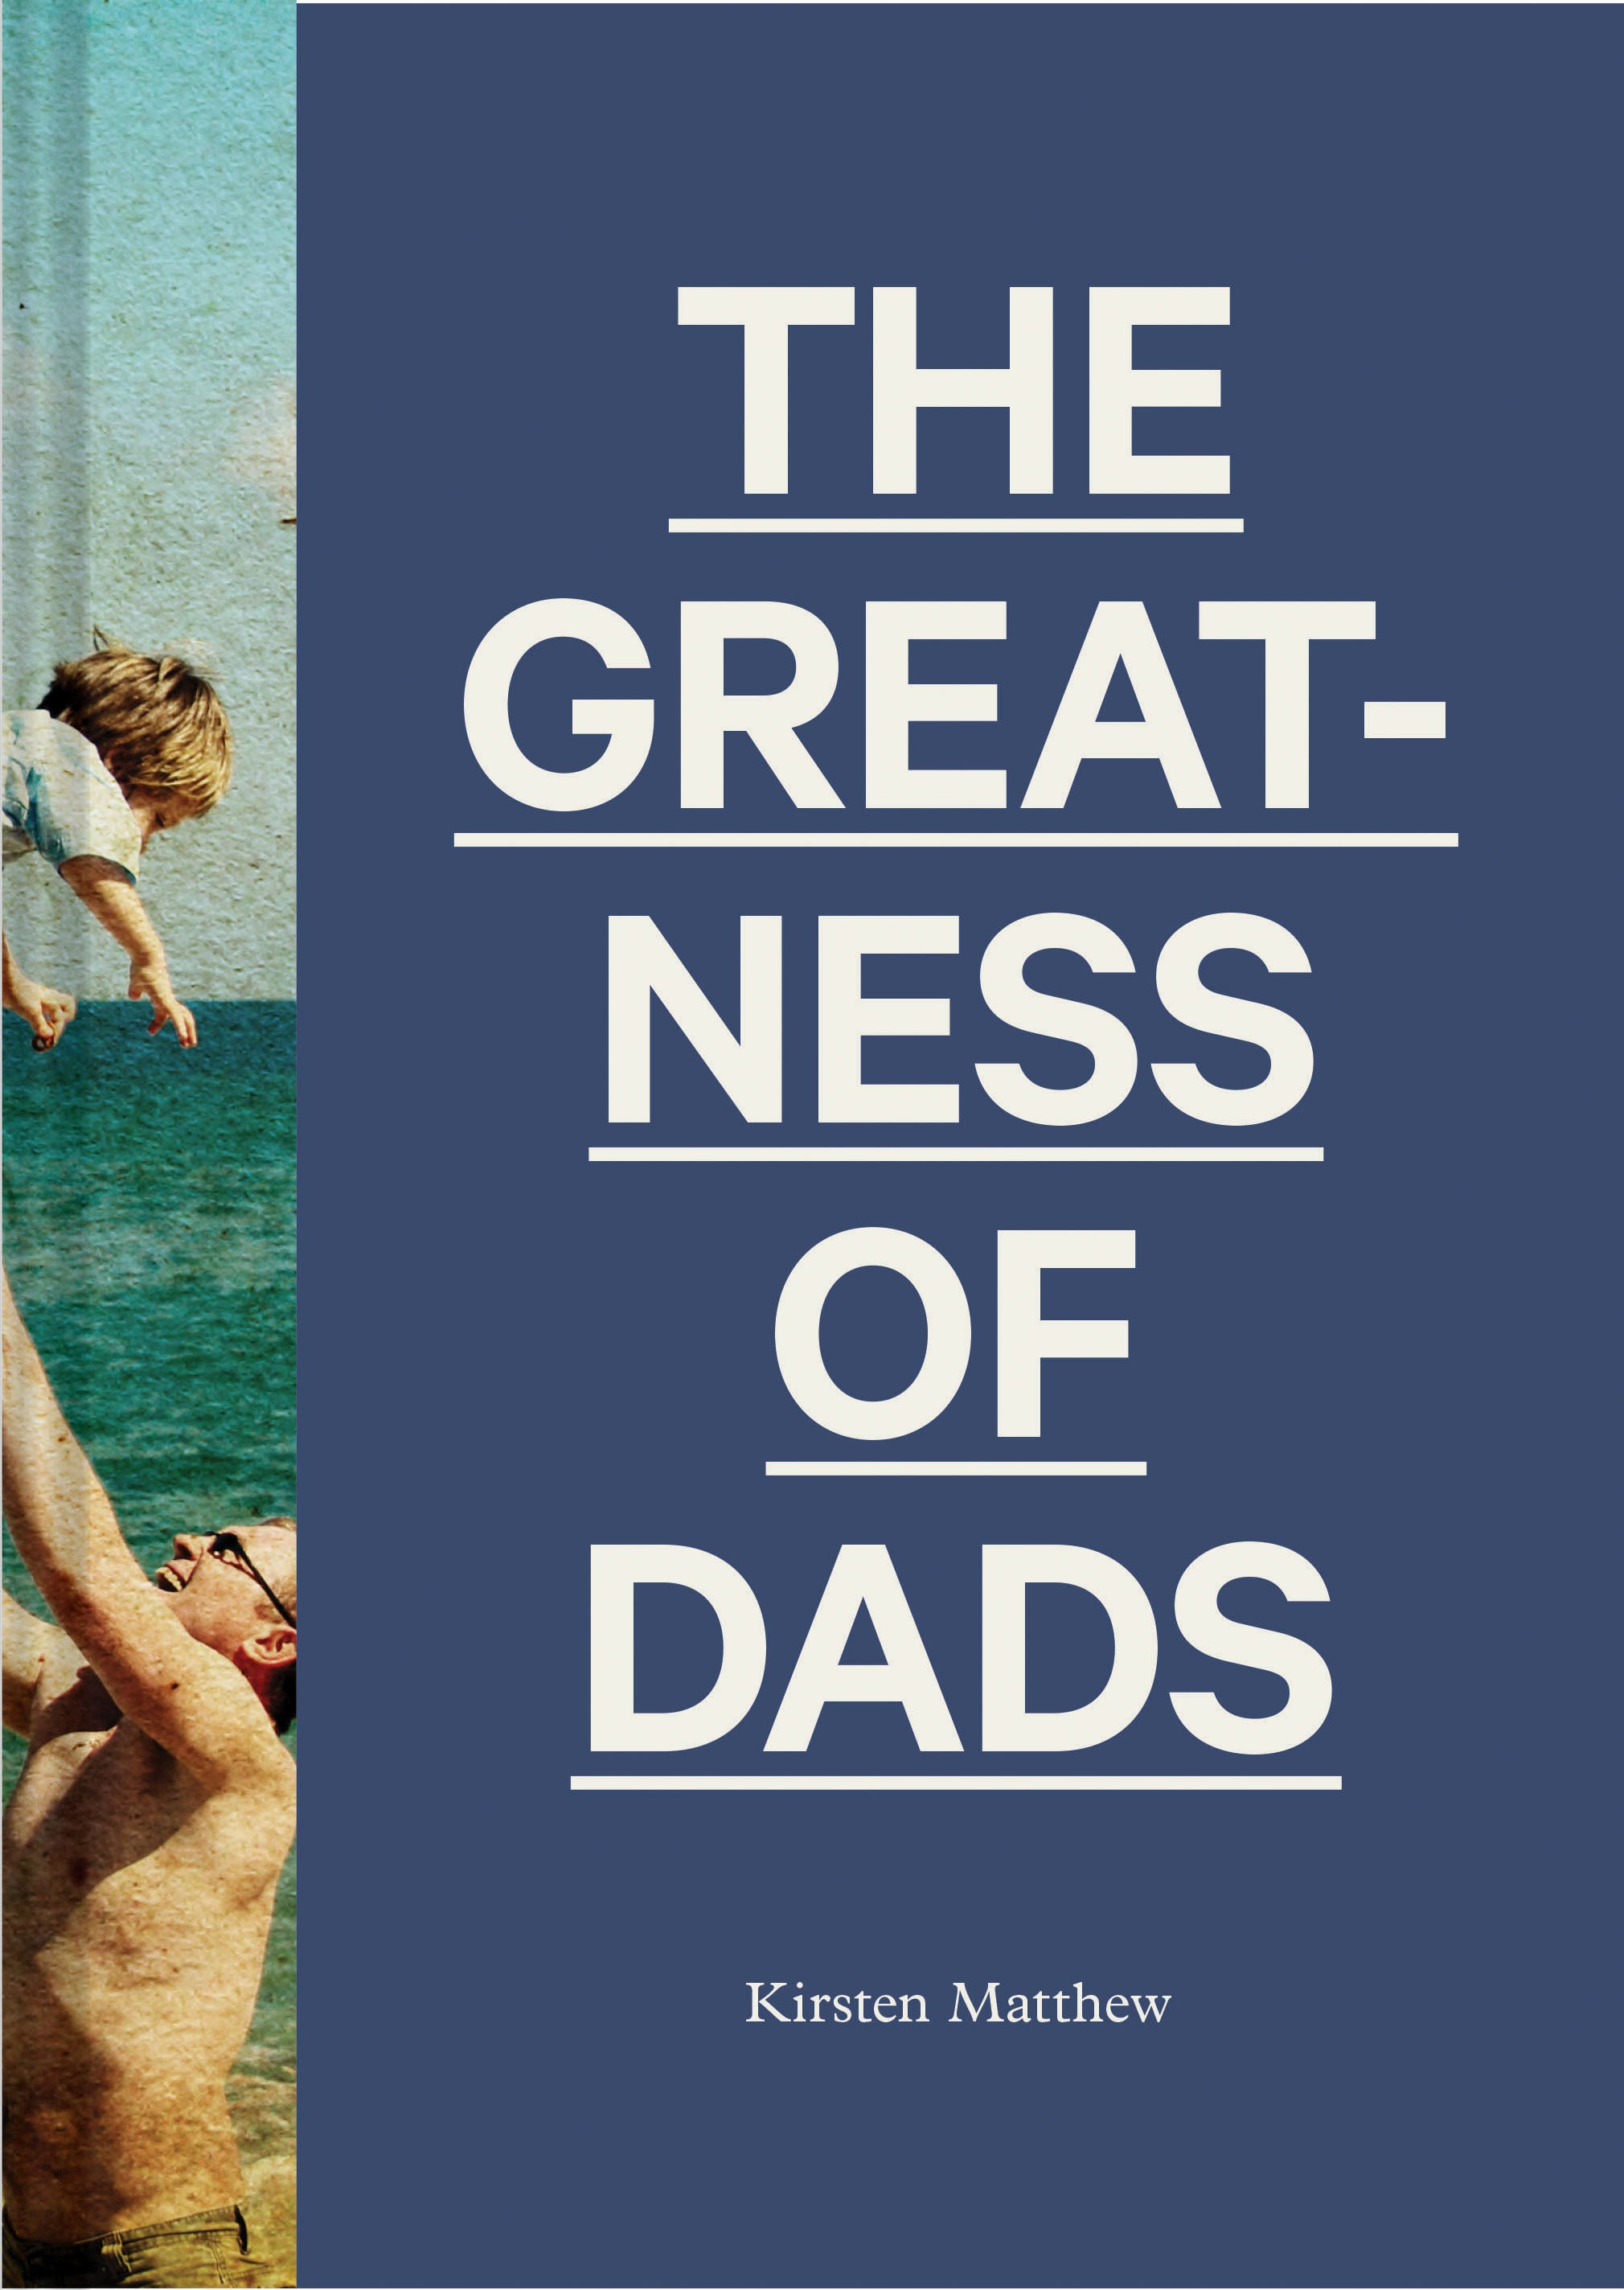 The Greatness of Dads Book by Kirsten Matthew